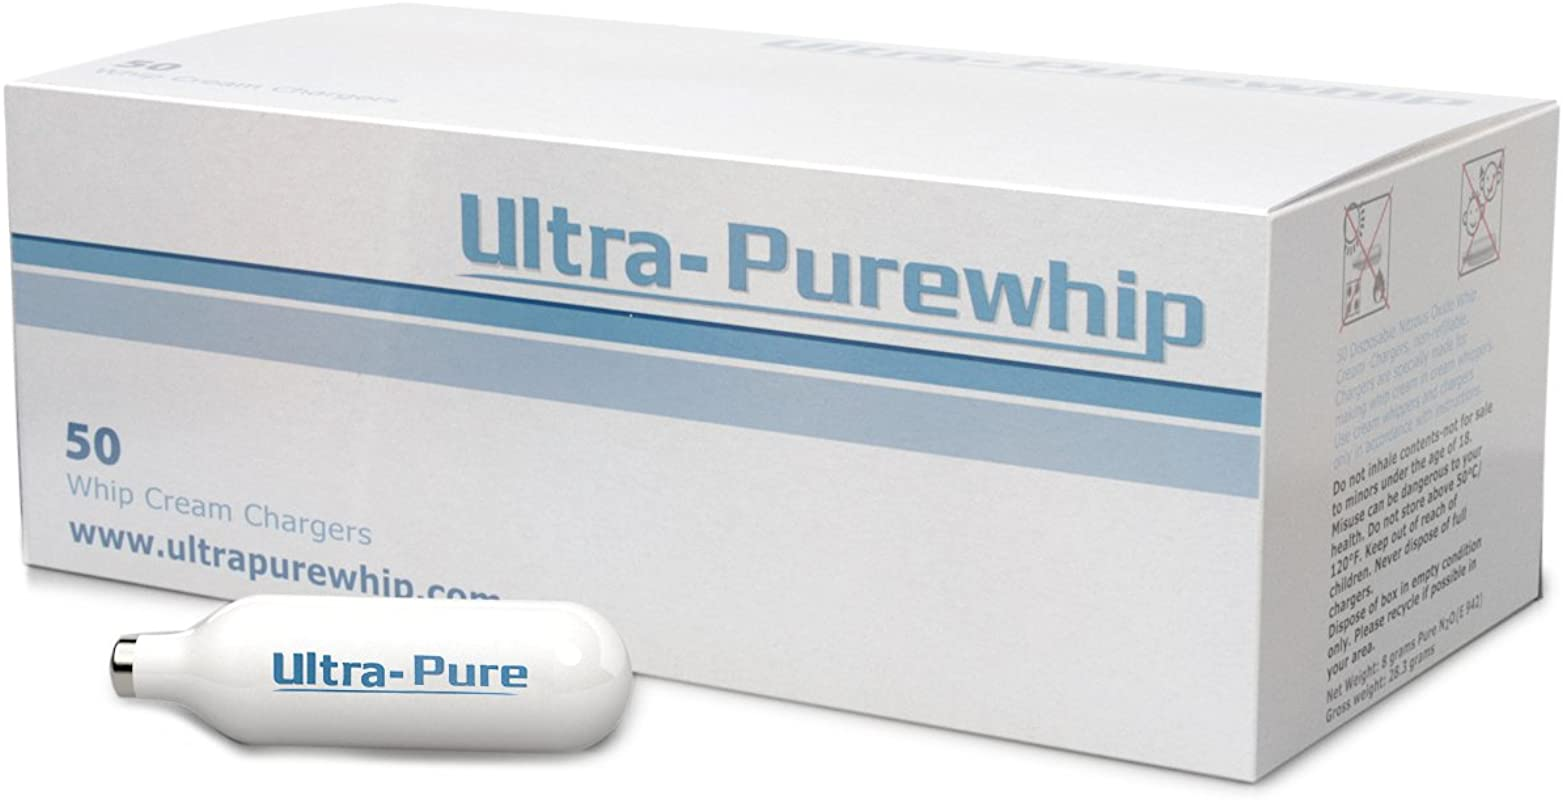 Creamright Ultra Purewhip 50 Pack N2O Whipped Cream Chargers